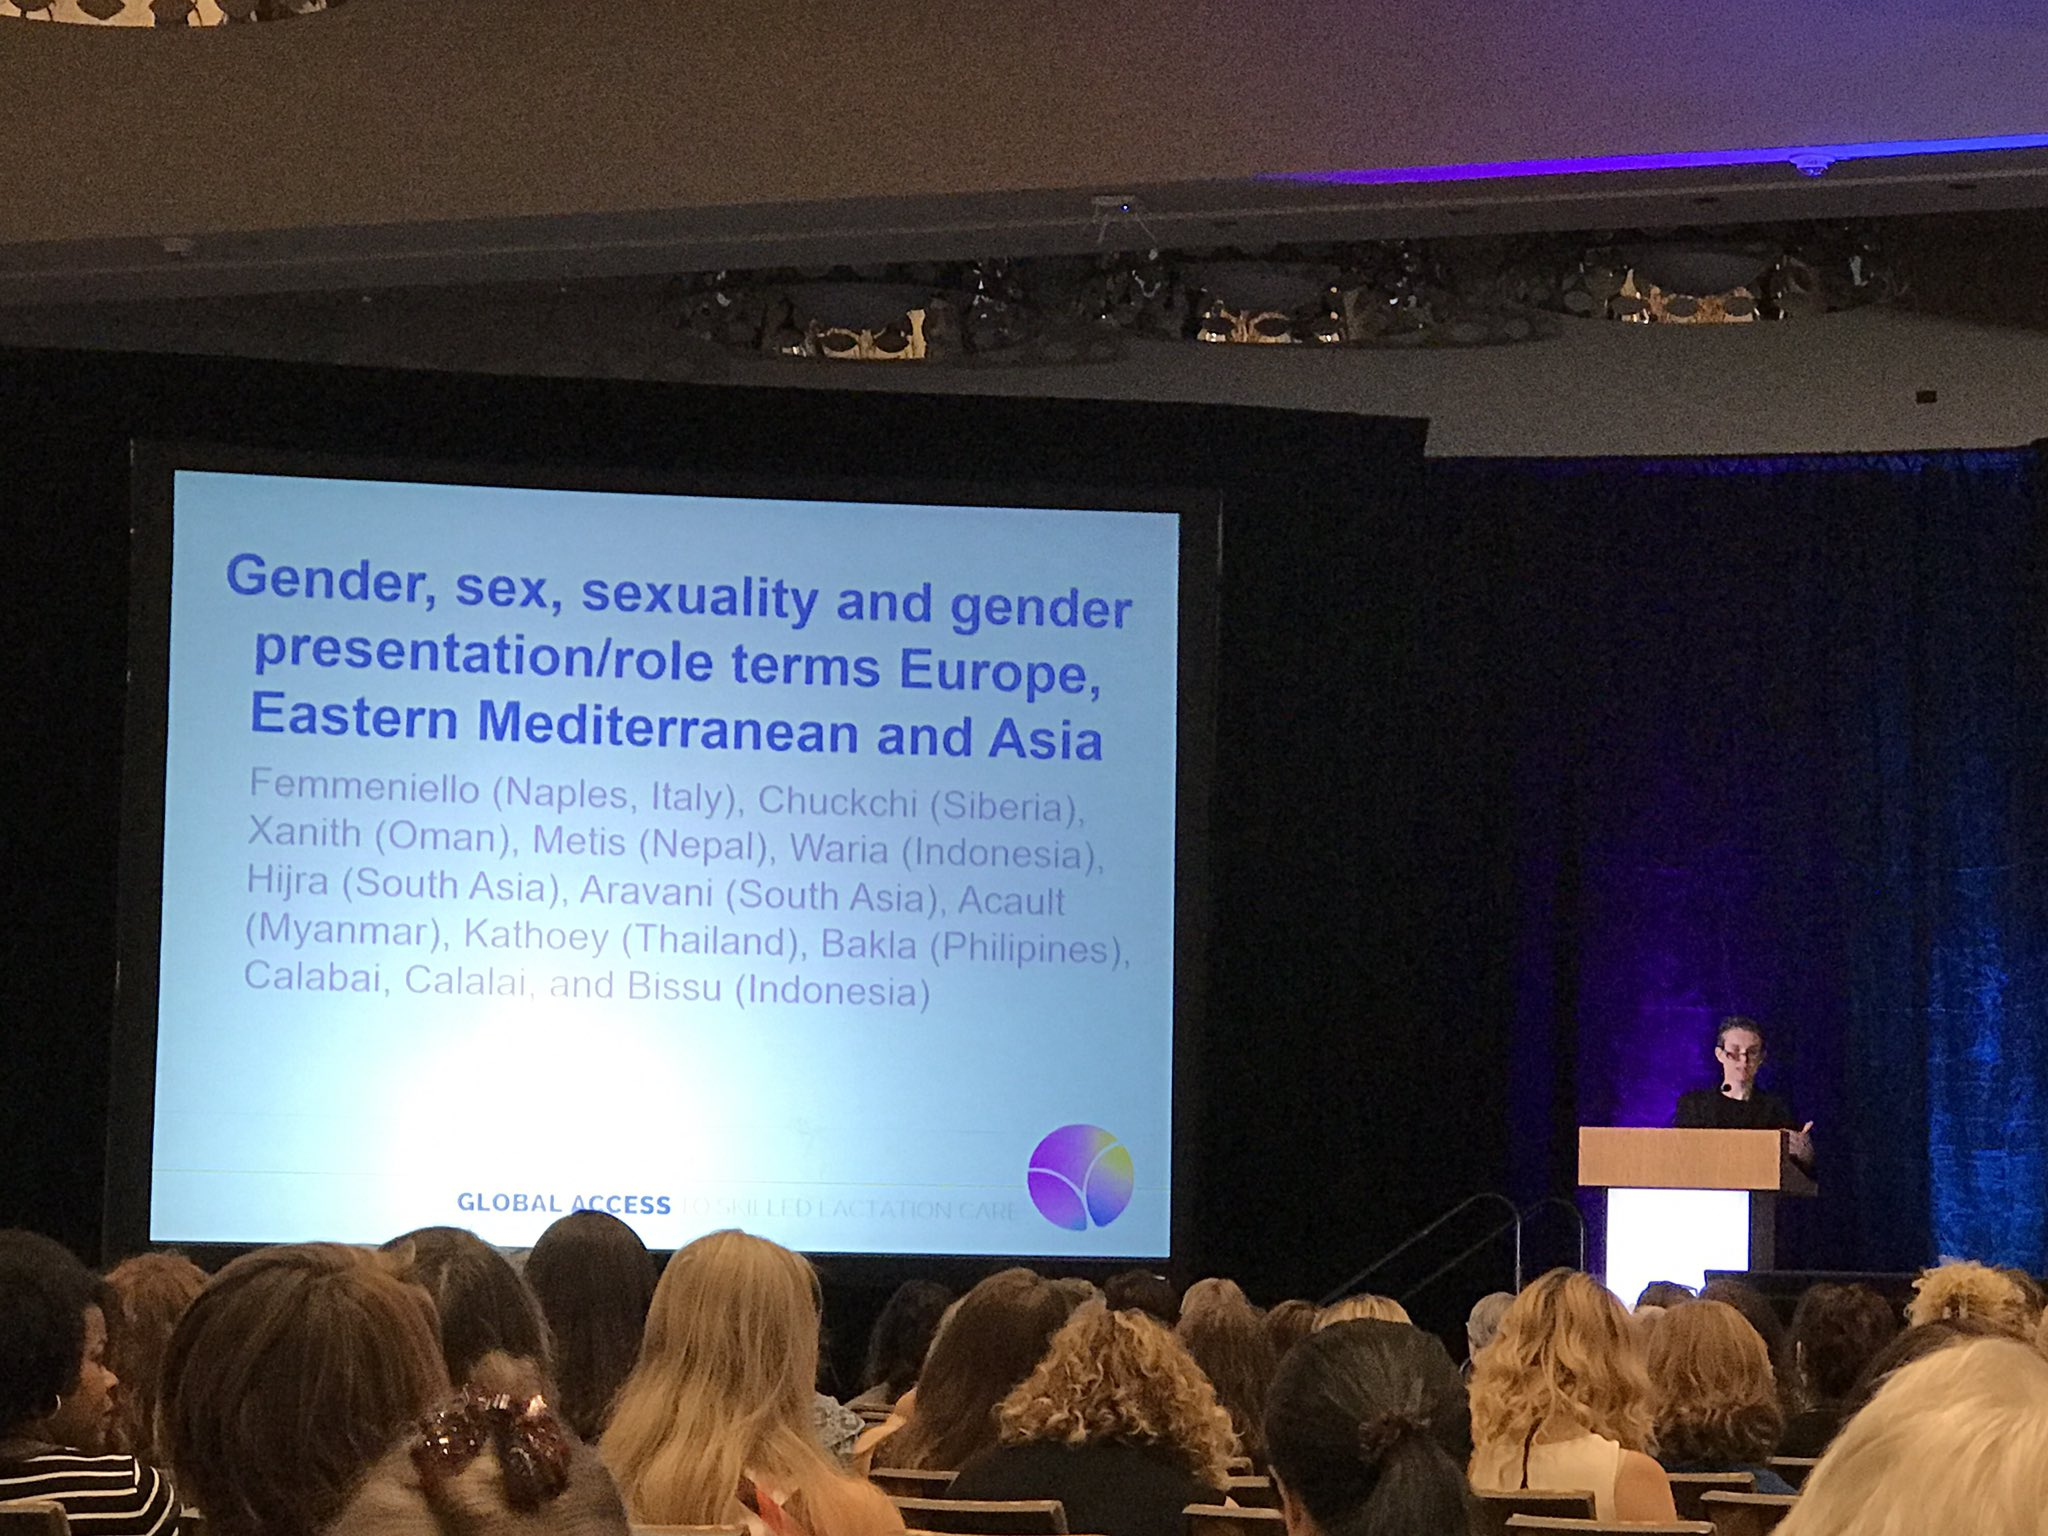 Alice Farrow speaks about Gender Diversity, Language, and Inclusion for Lactation Specialists #ilca17 #LGBTQ #support https://t.co/2lLuRccvA7